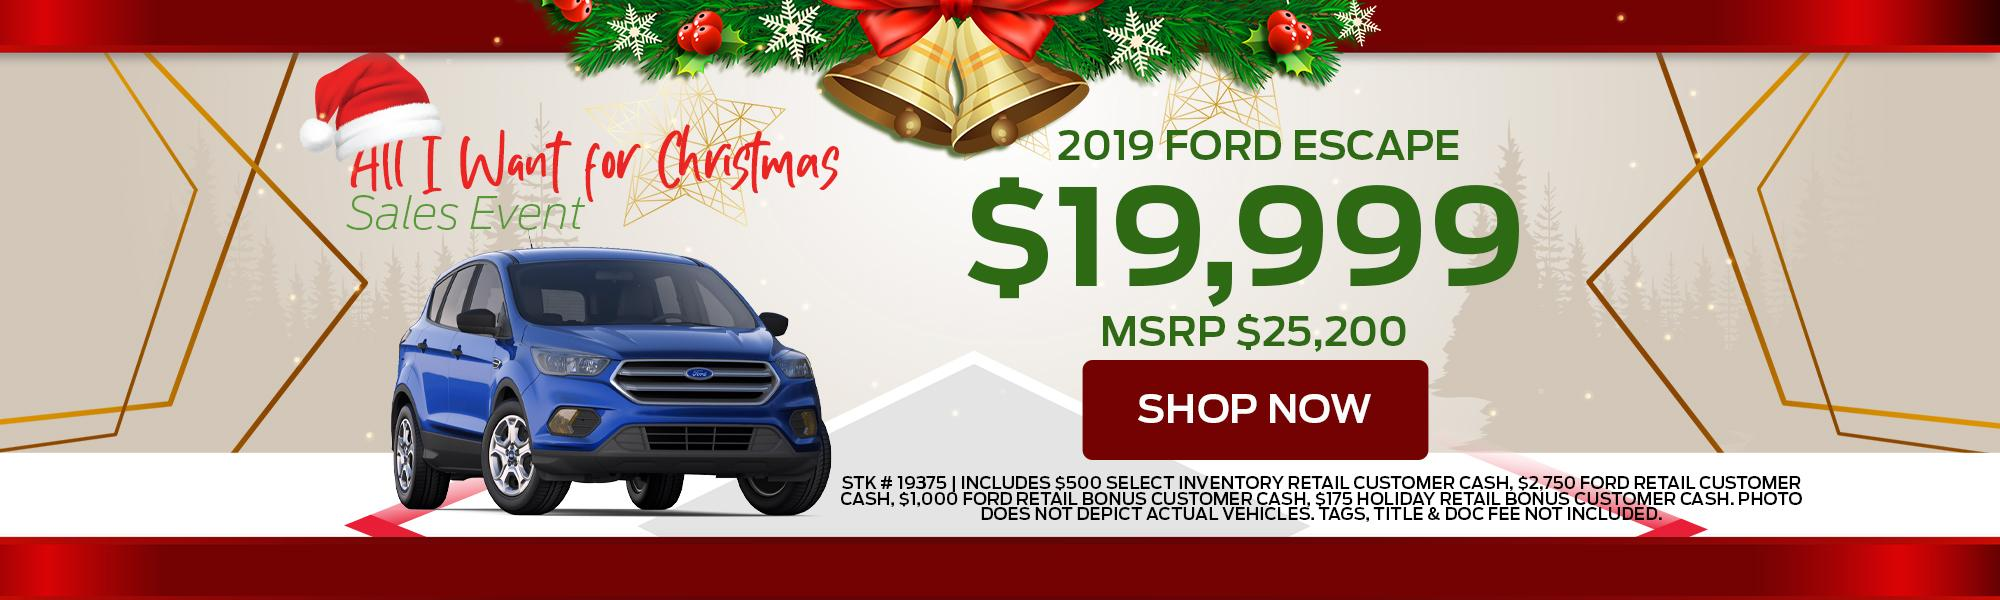 2019 Ford Escape Offers